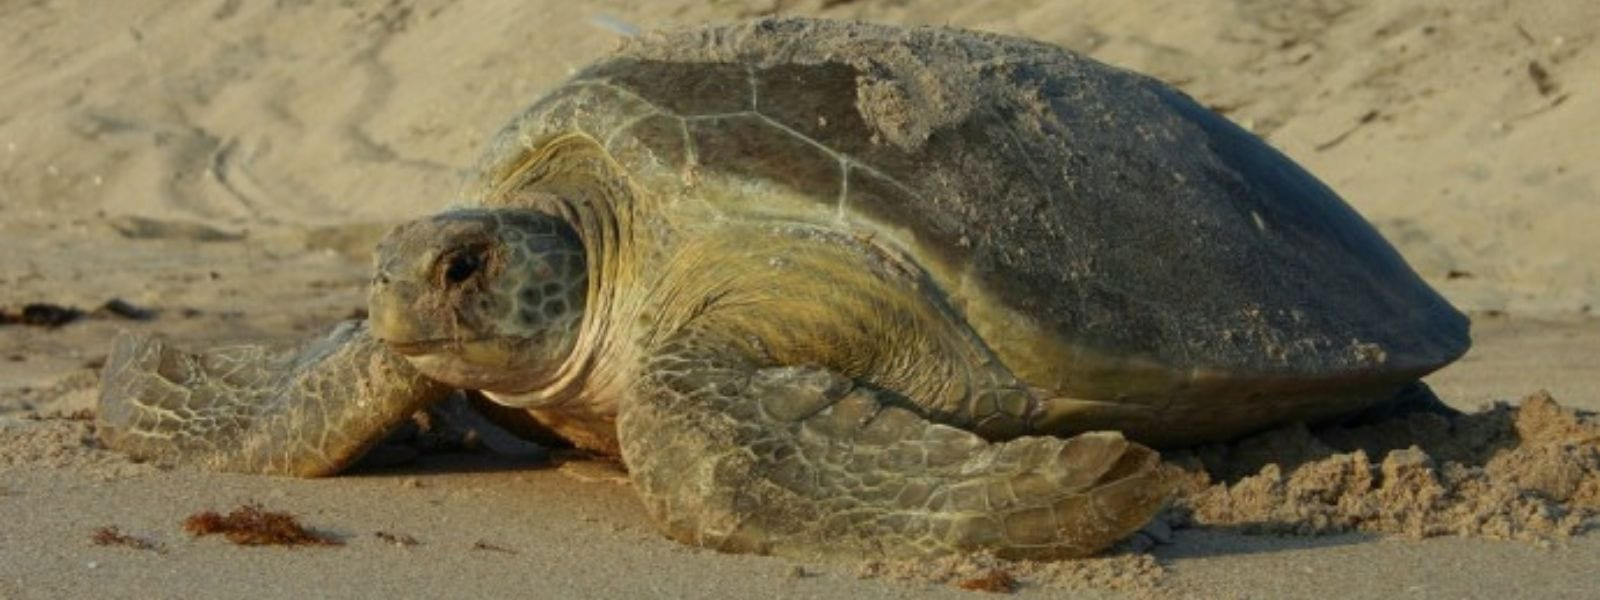 sea turtle nesting her eggs in the sand on the beach